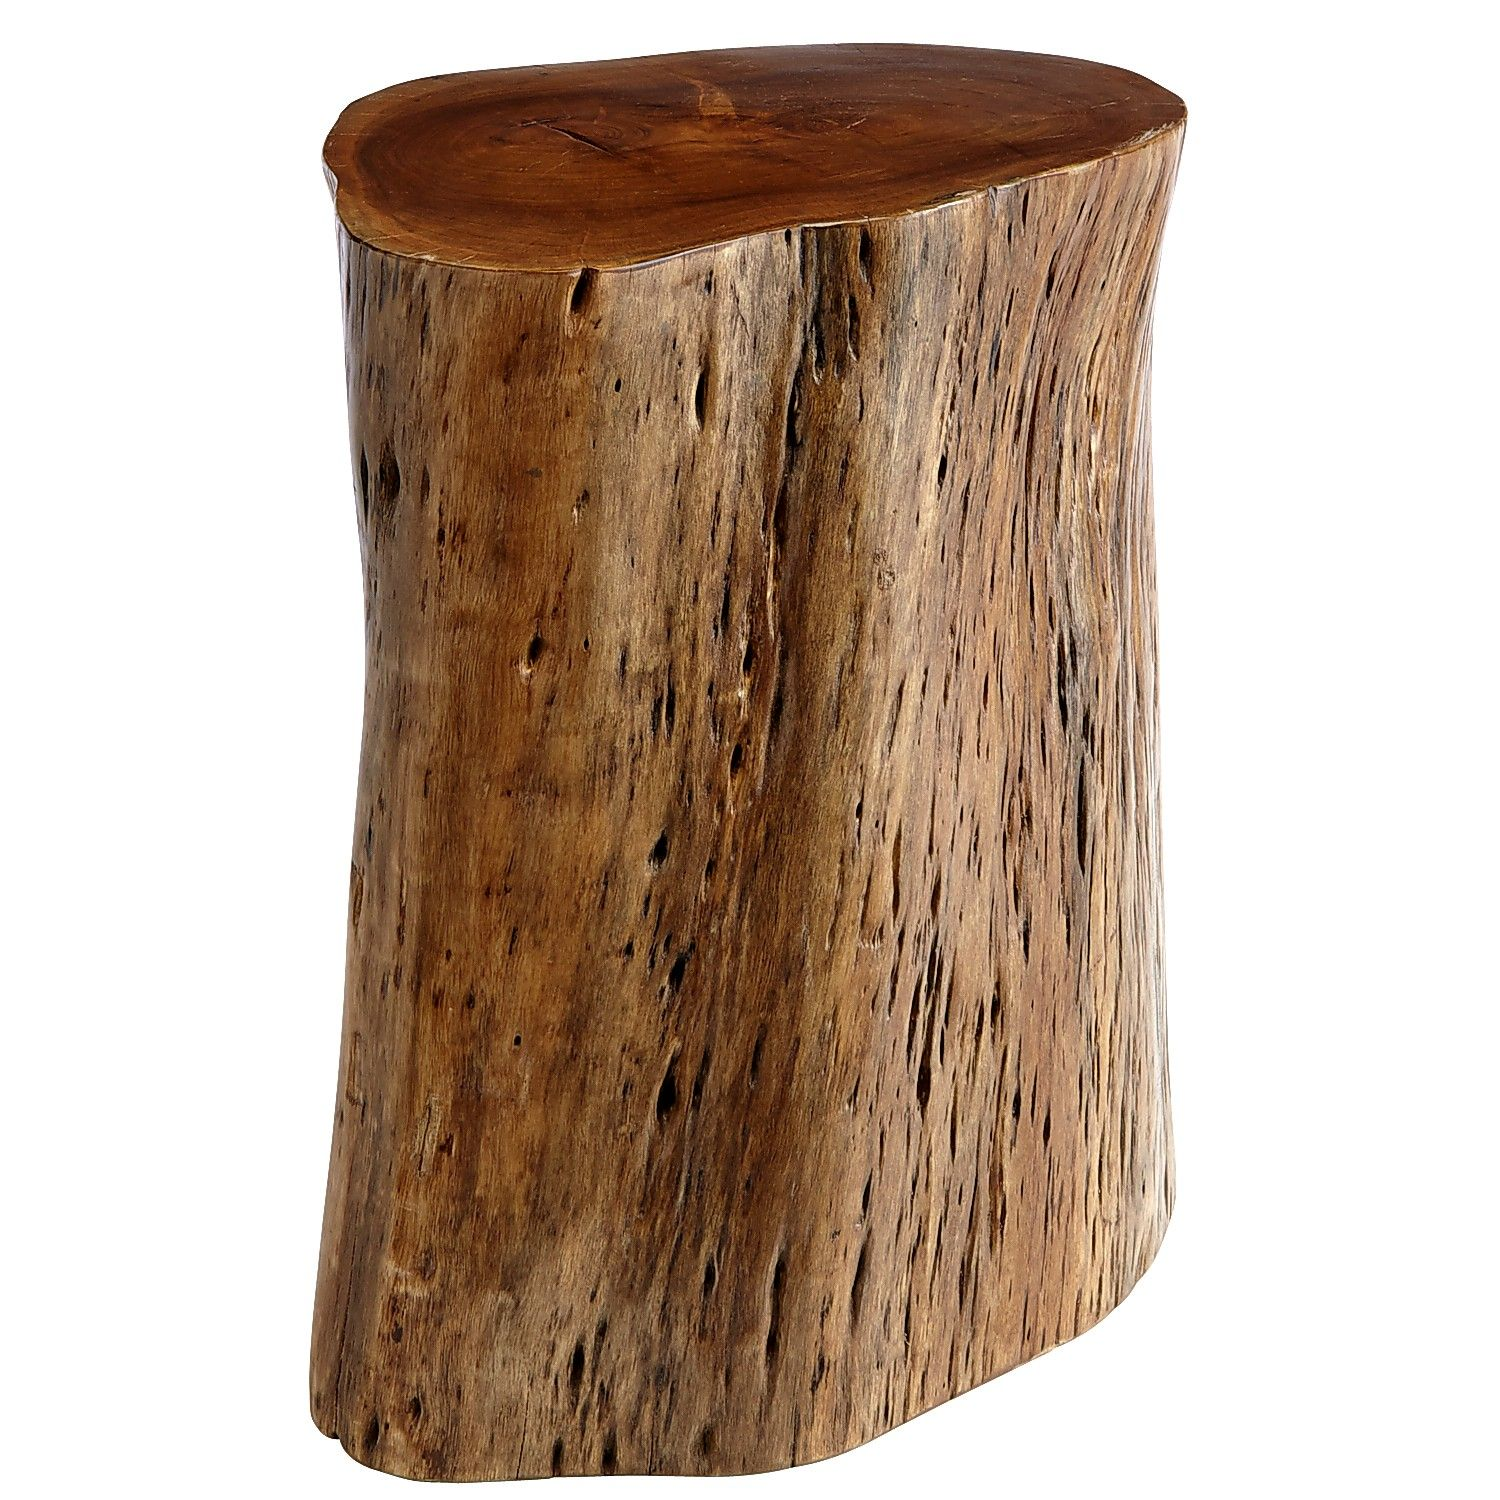 maram natural tree stump accent table wood tables log home goods website drawer chest furniture for entryway white folding outdoor side antique tall designer placemats and napkins